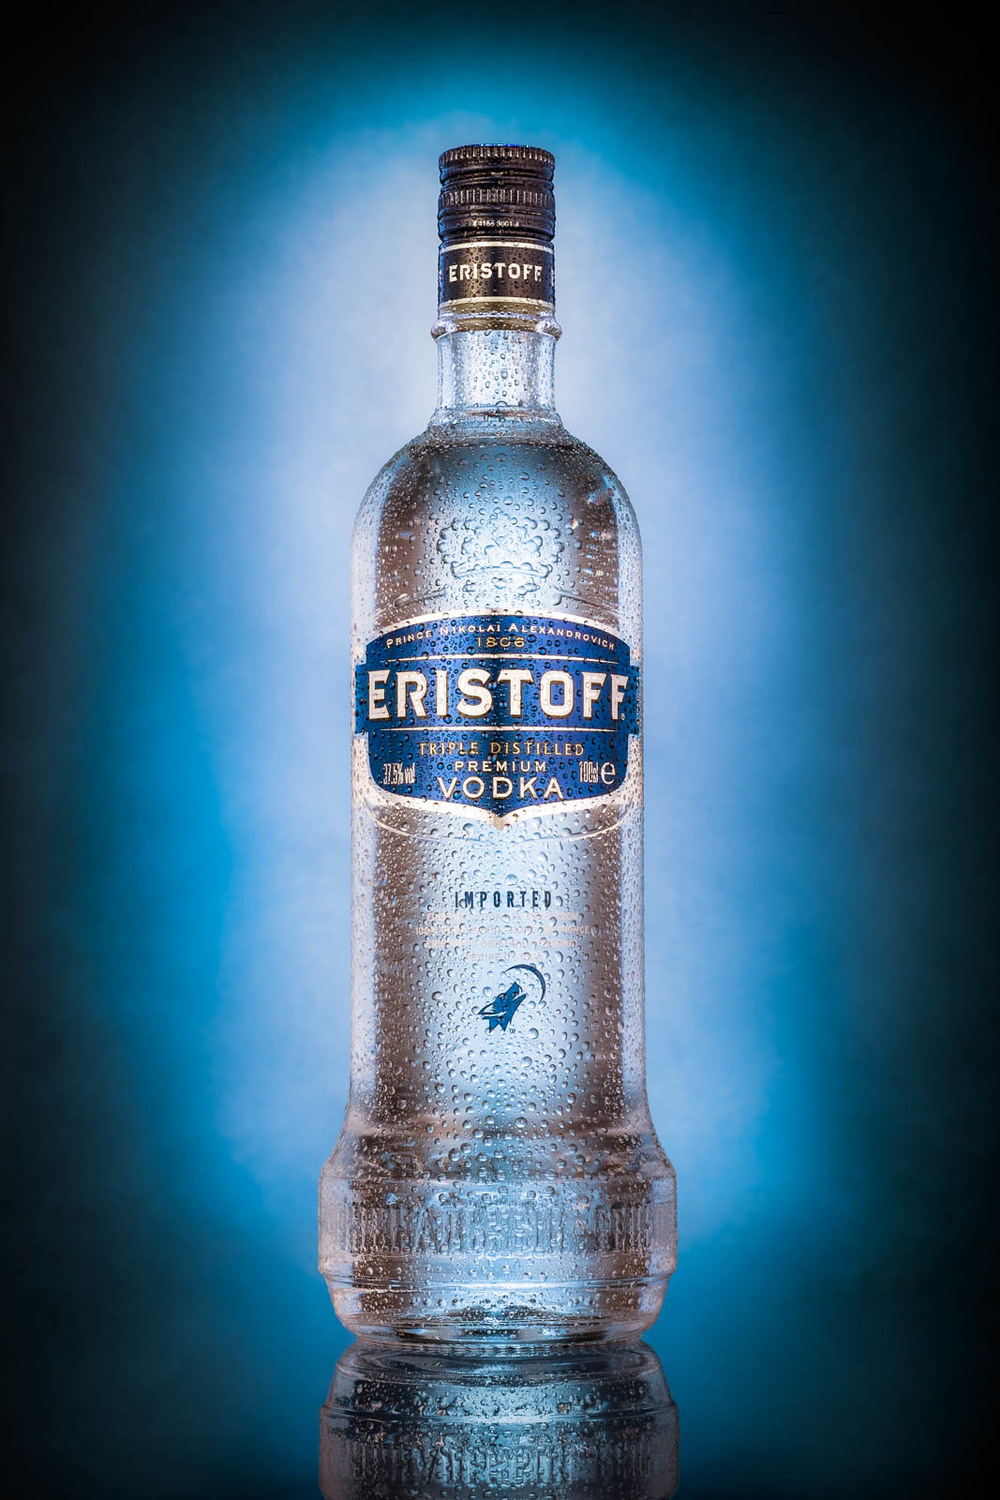 Eristoff vodka bottle